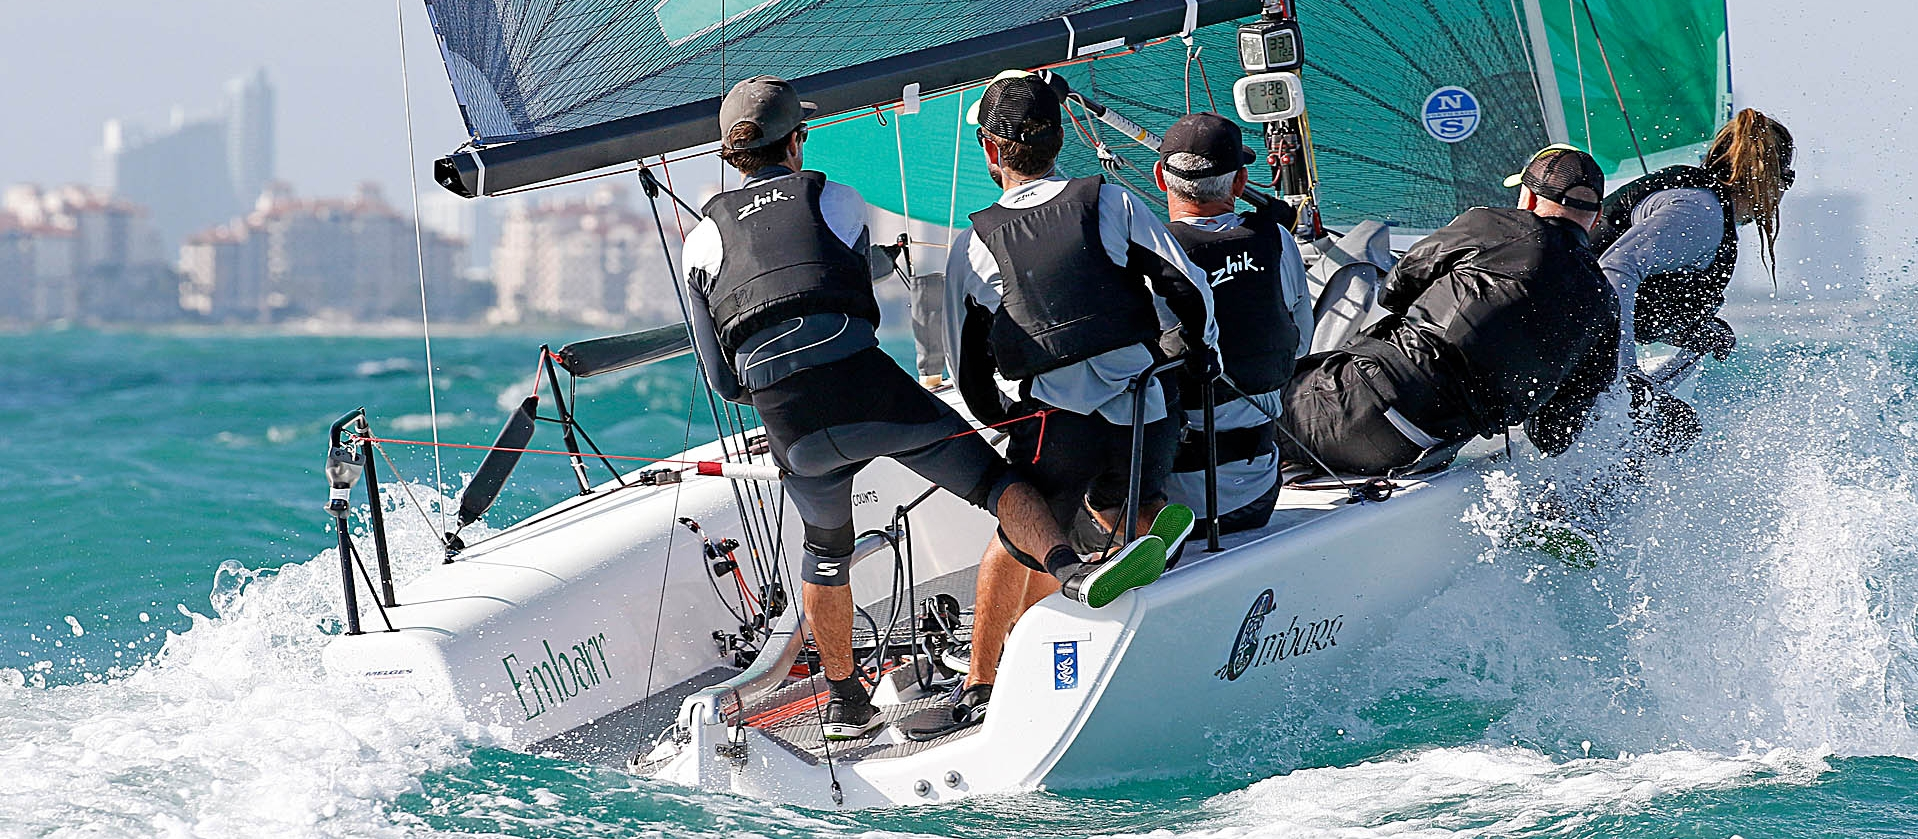 Embarr IRL829 of Conor Clarke - 2016 Melges 24 World Champion at the World Championship in Miami, USA